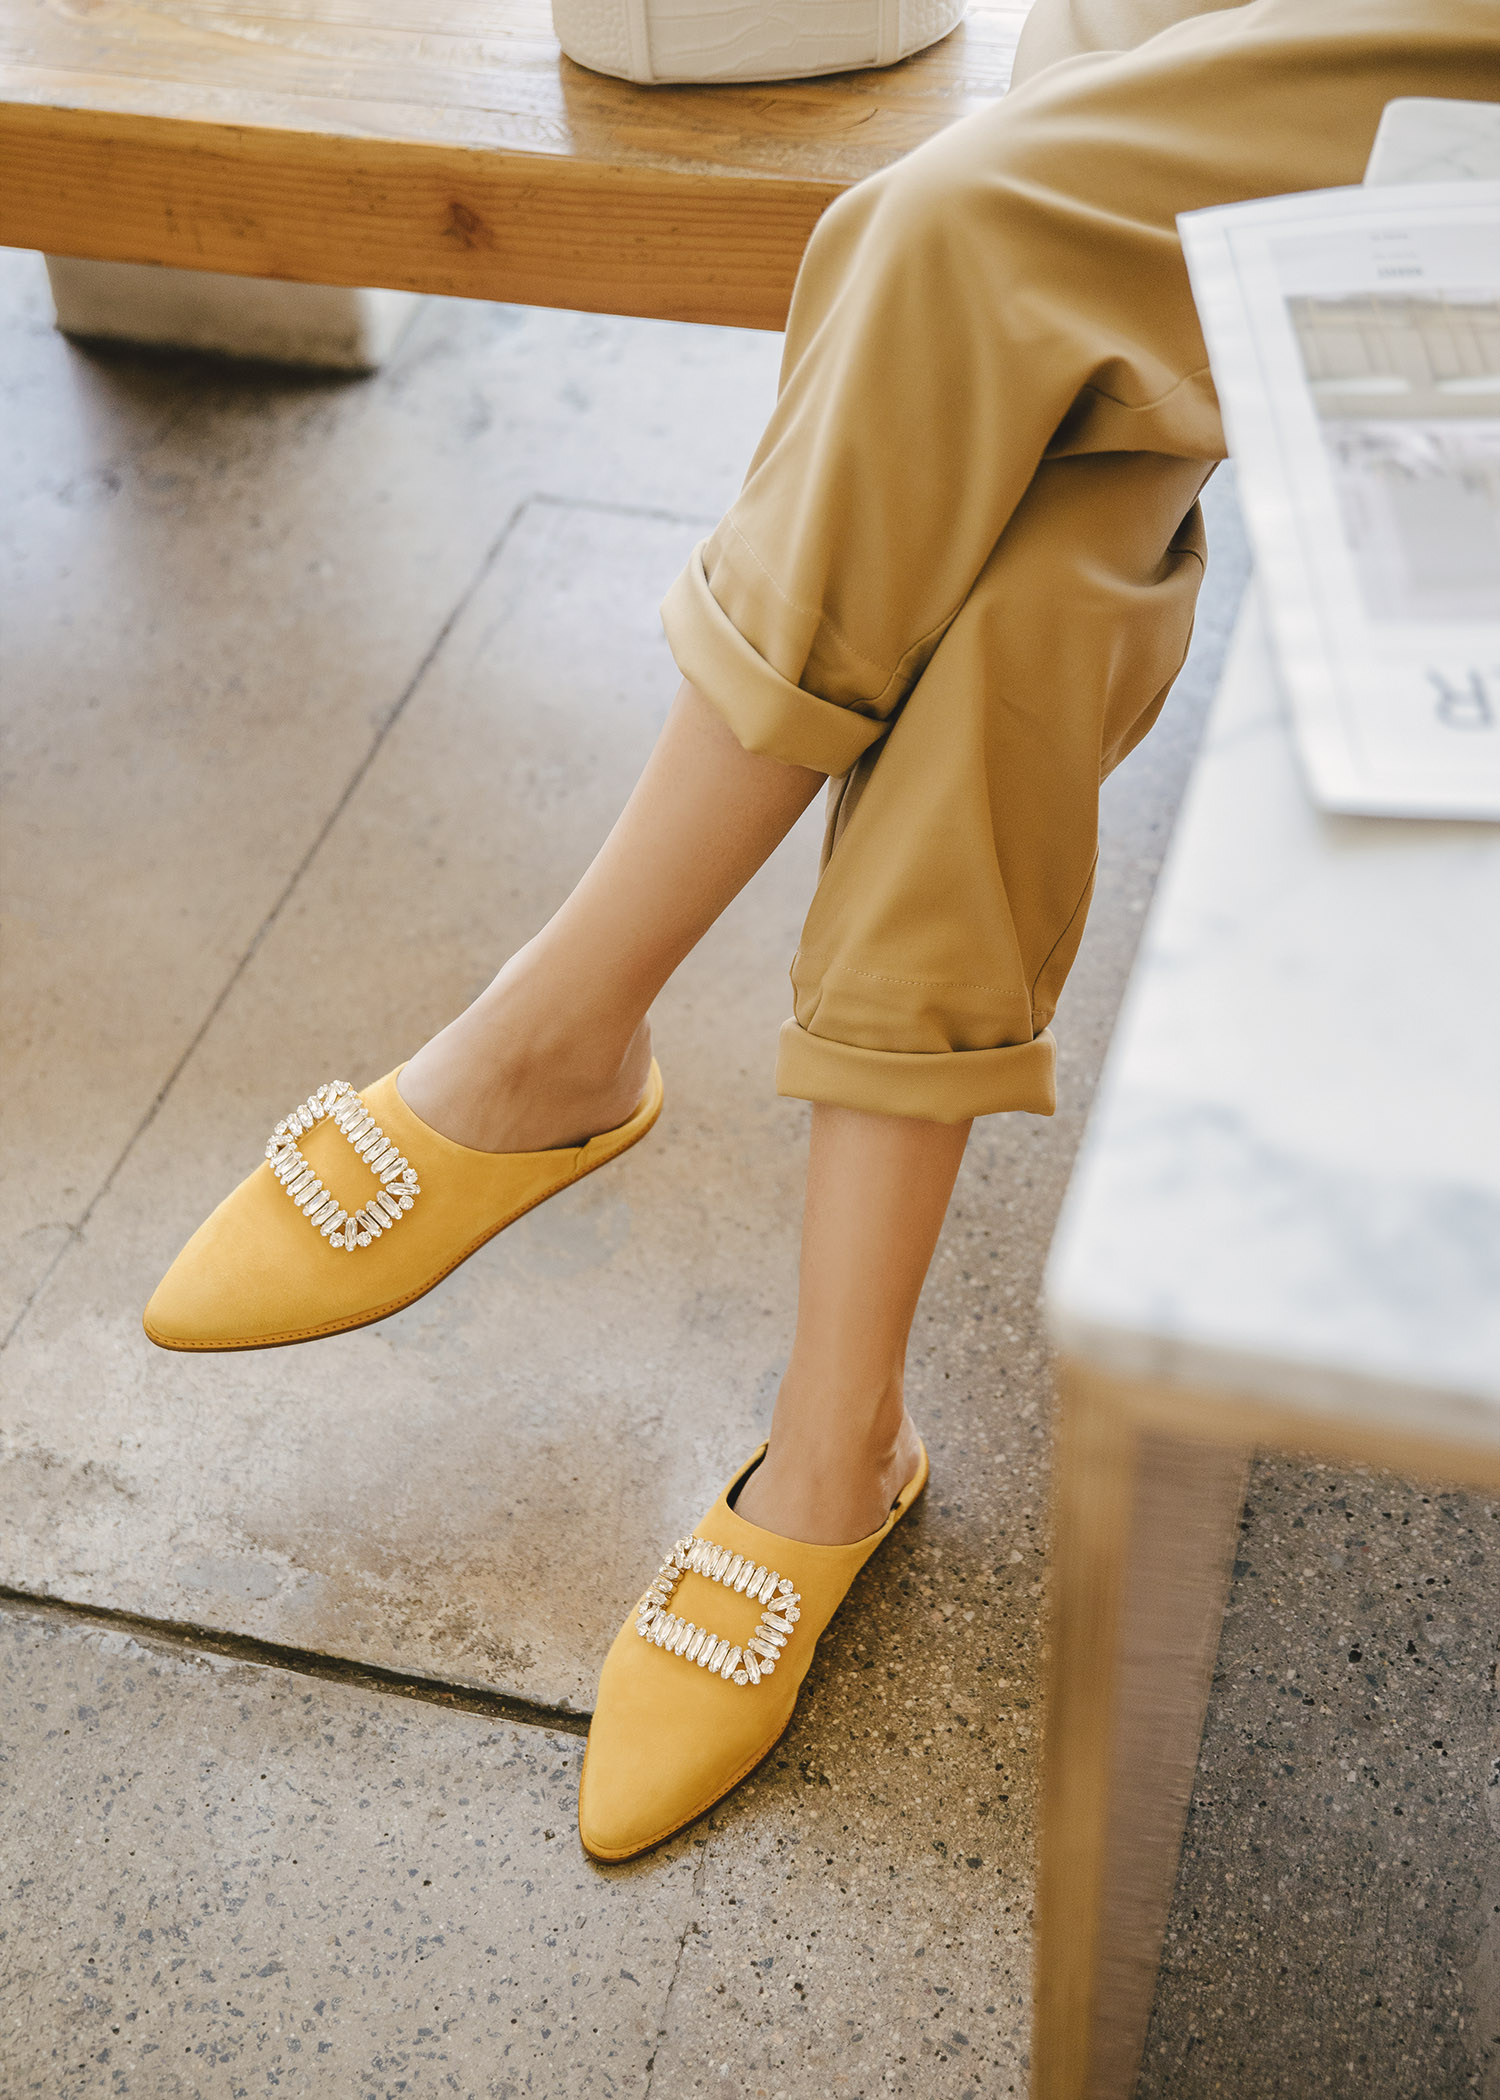 roger vivier bab viv mules in yellow suede with tank top with high-waisted pant